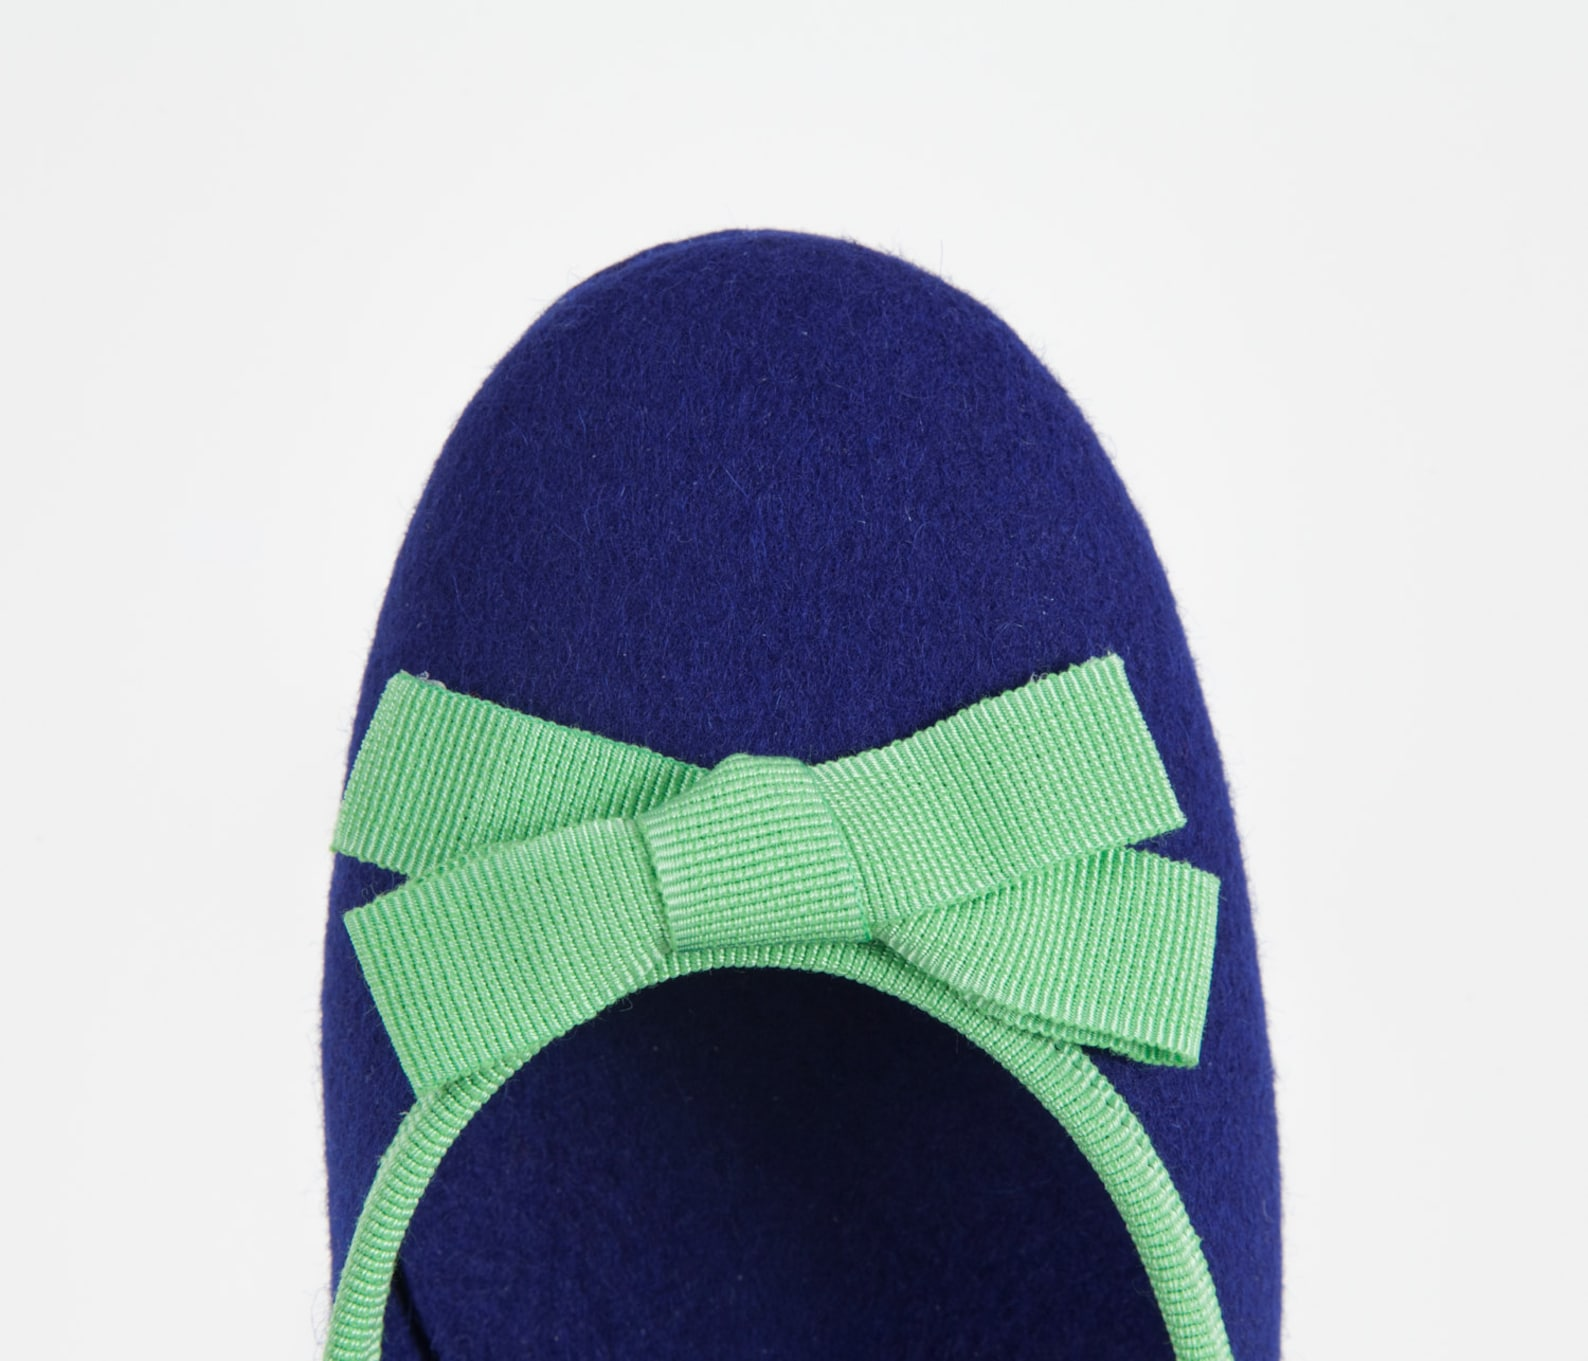 women's slippers- blue ballet flat- merino wool felt- handmade in italy- grosgrain ribbon & bow- size eu 36